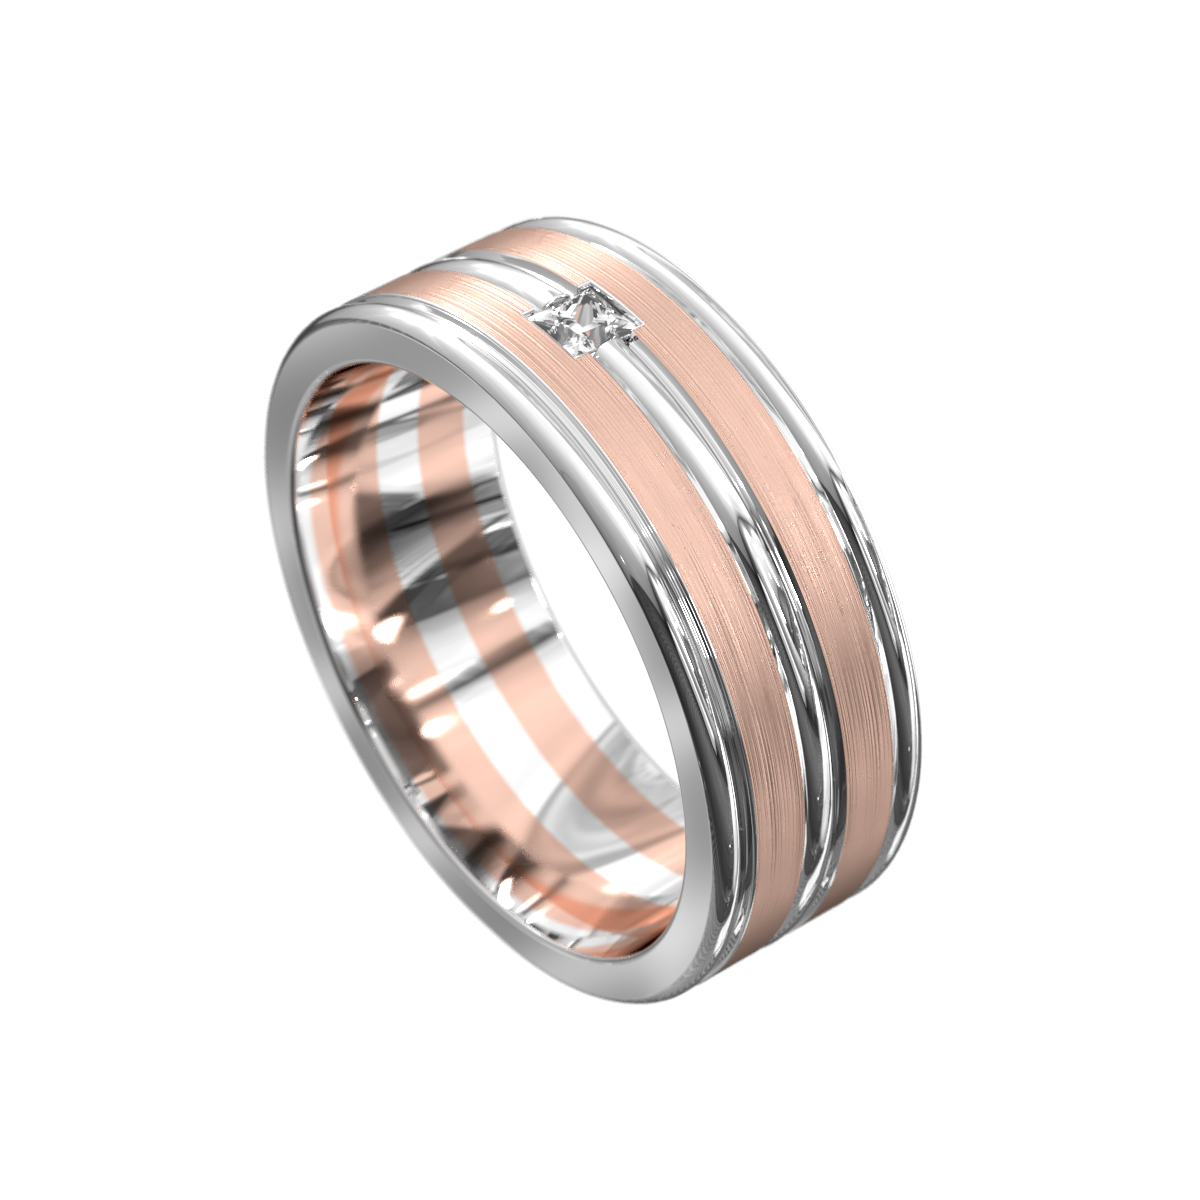 Polished White and Rose Gold Mens Wedding Ring